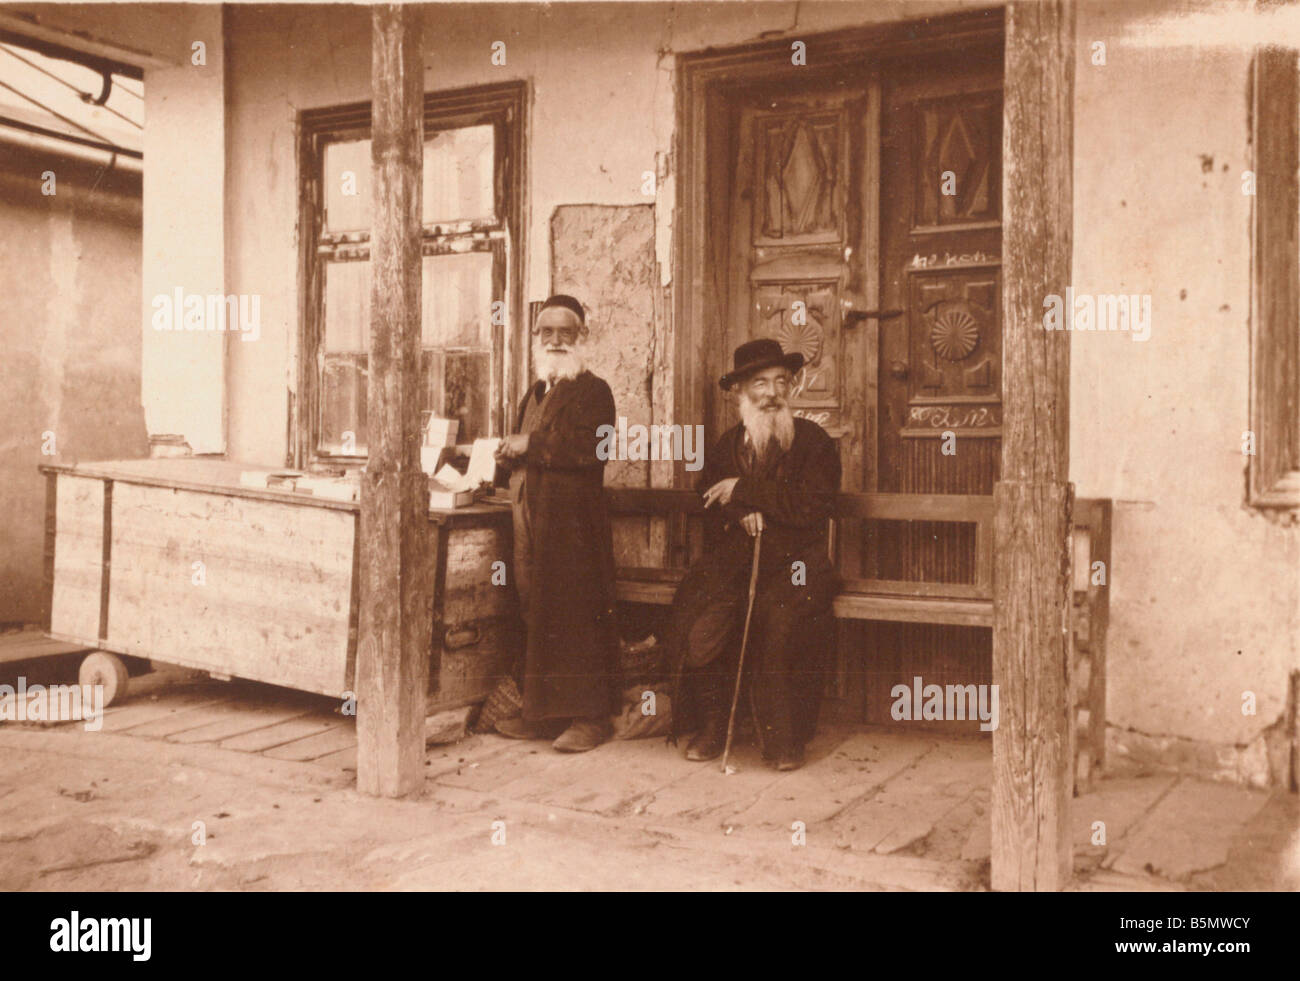 Jews in Olesko during World War 1 Photo History of Judaism Jews in Olesko East Galicia during World War 1 Photo - Stock Image